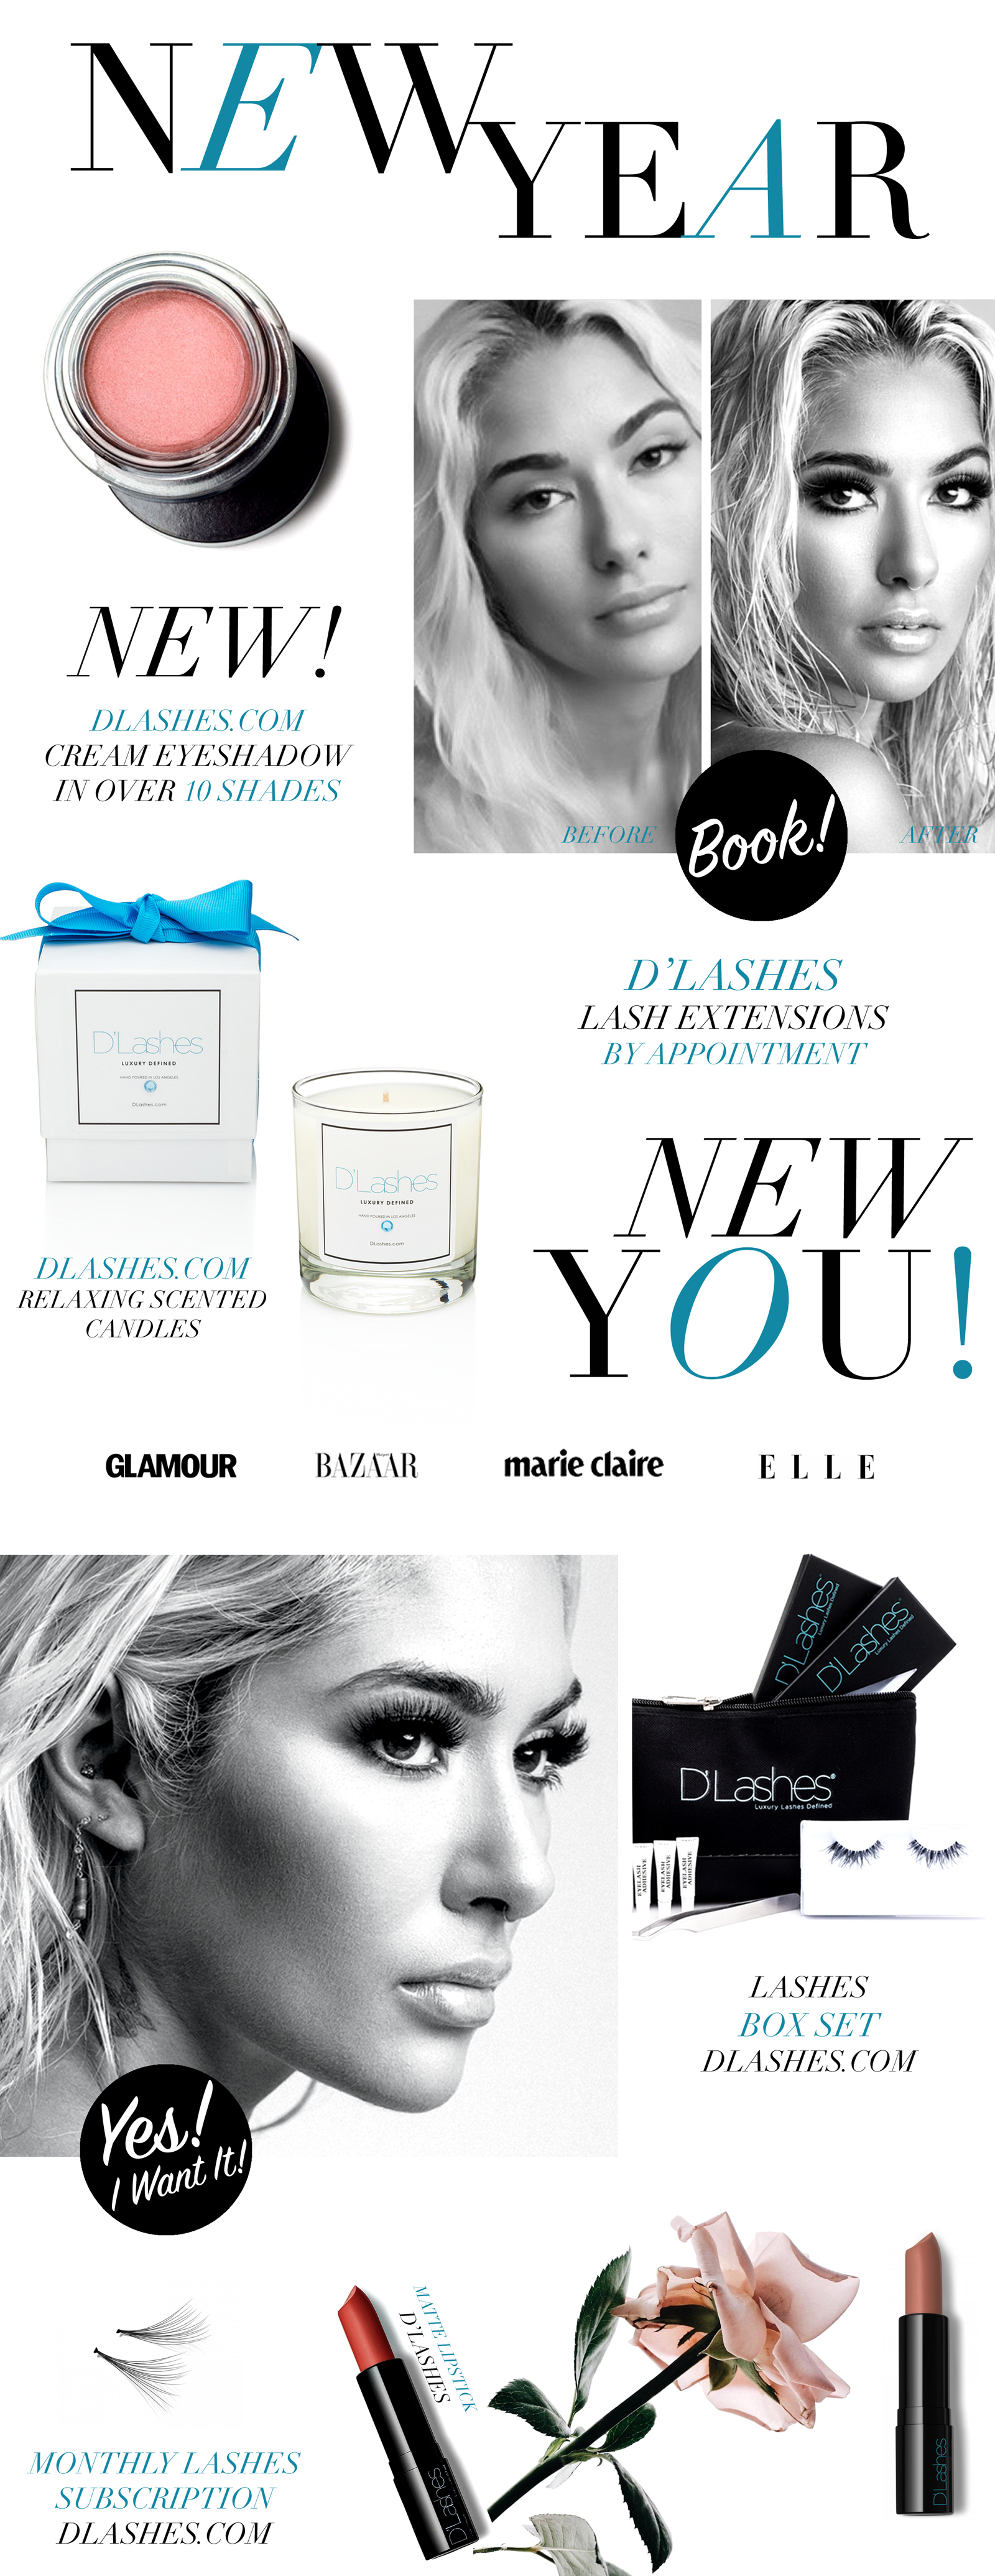 New D'Lashes New Year 2018 Beauty